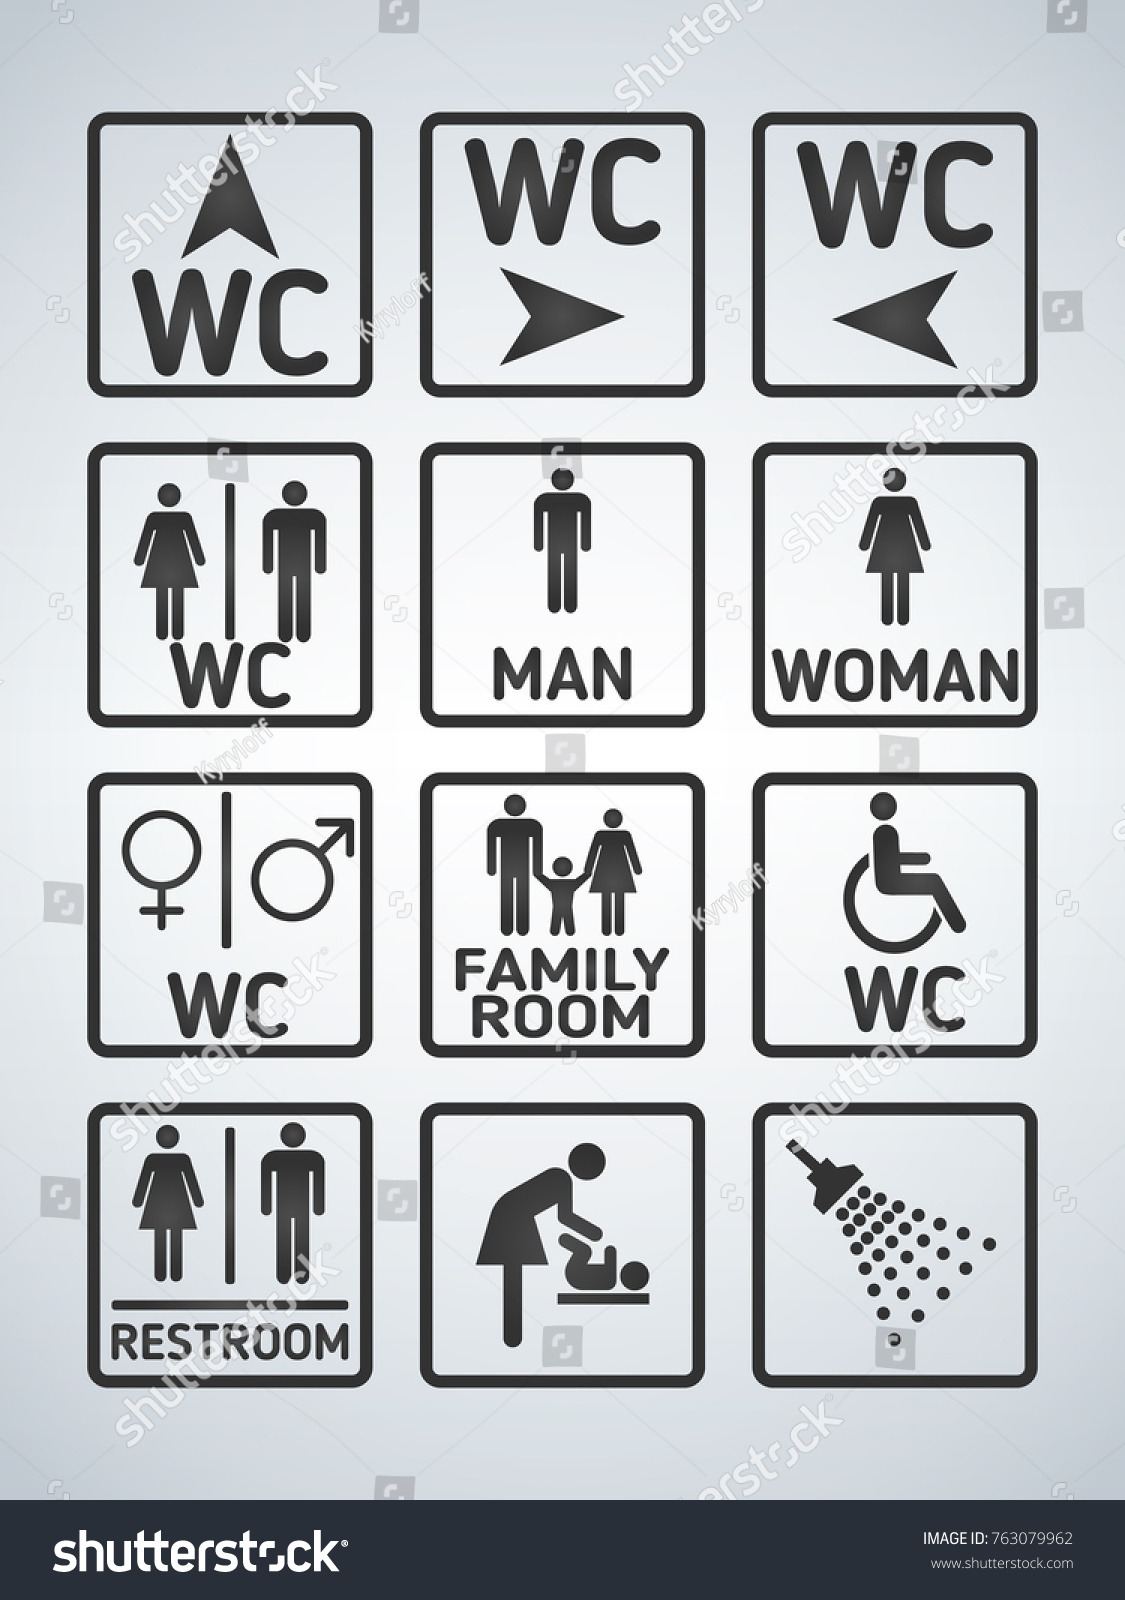 Toilet signs vector set stock images image 36323784 - Wc Toilet Door Plate Icons Set Stock Vector 763079962 Shutterstock Stock Vector Wc Toilet Door Plate Icons Set White On Black Men And Women Wc Sign For